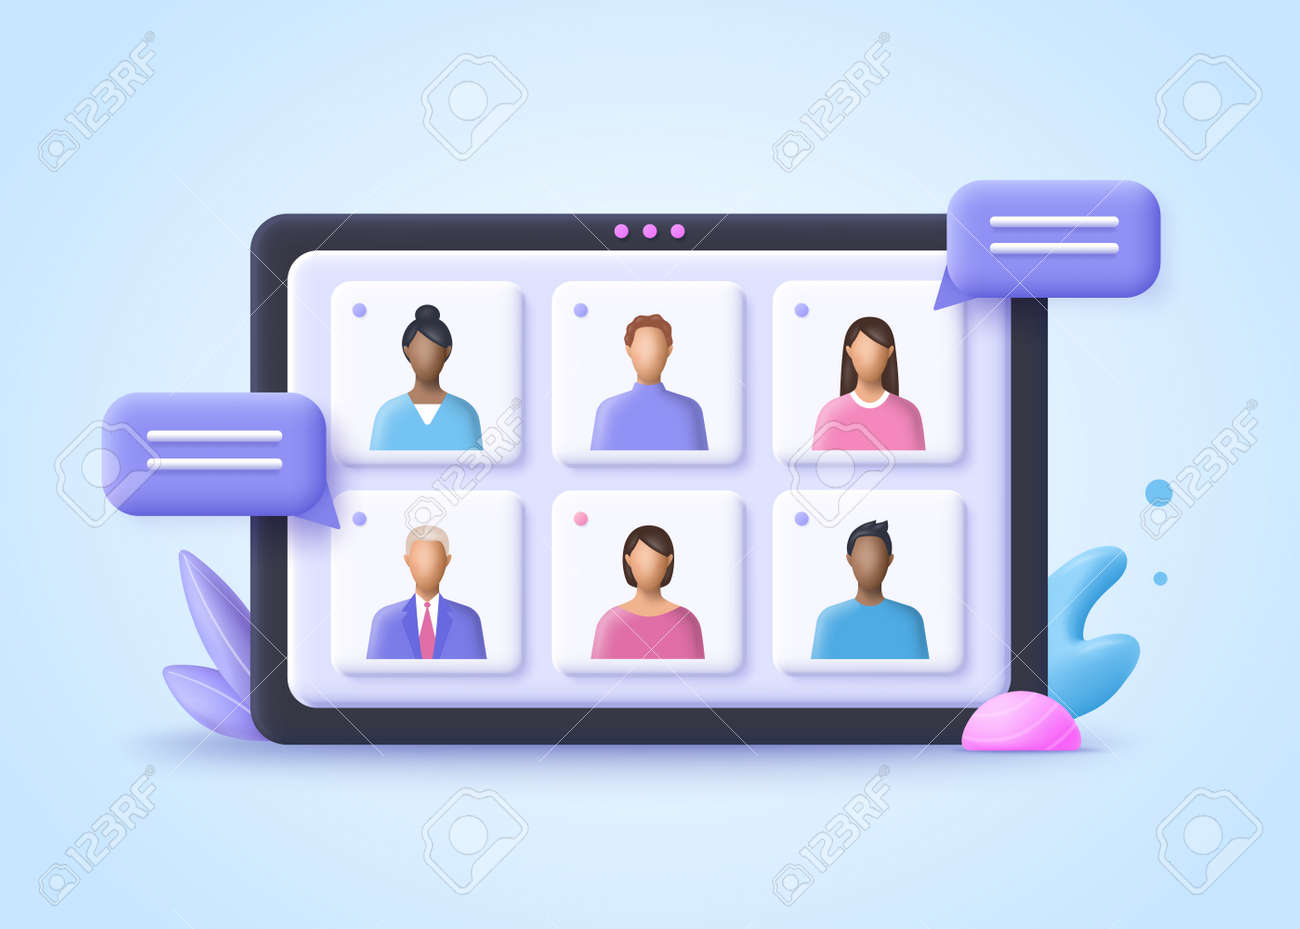 Online Meeting, Virtual Conference Video call, Briefing, Teamwork Concept. 3d realistic vector illustration. - 169499953